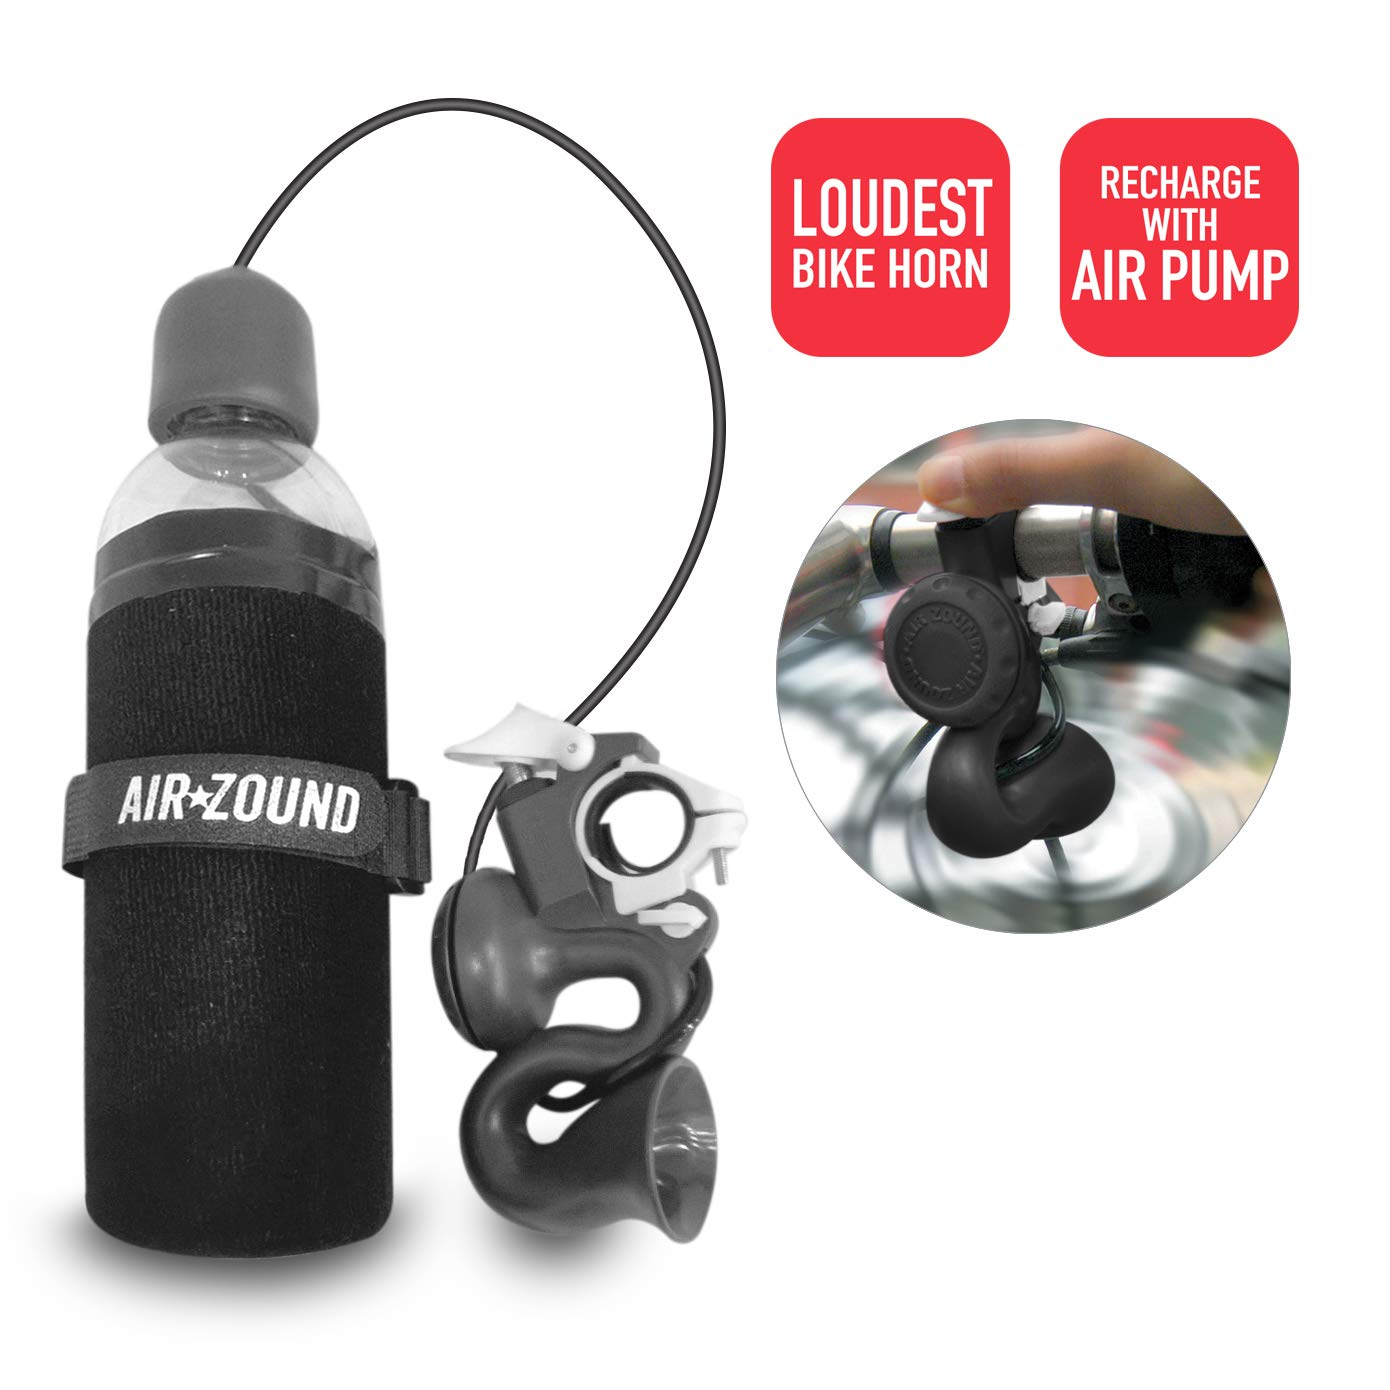 Delta Cycle Airzound Very Loud Bike Horn Air Hooter | Rechargeable Bell Siren Alarm Super dB